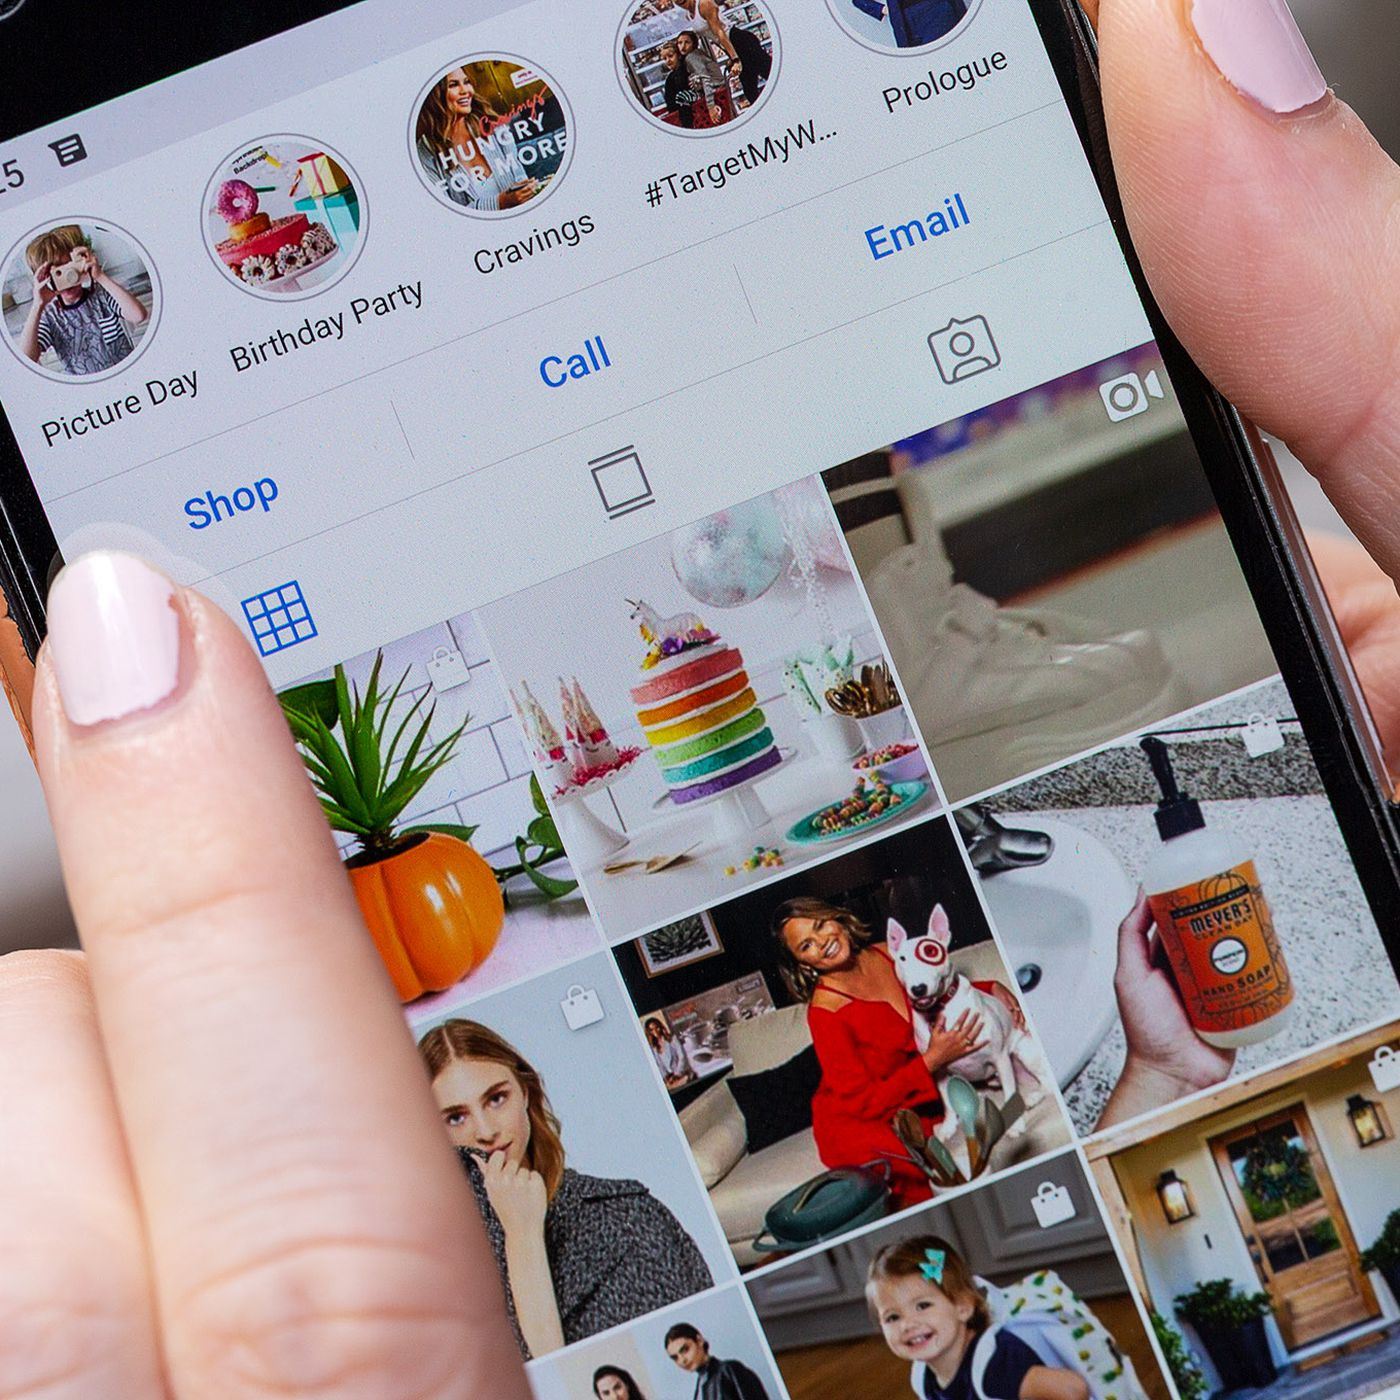 Instagram says sites need photographers' permission to embed posts - The  Verge